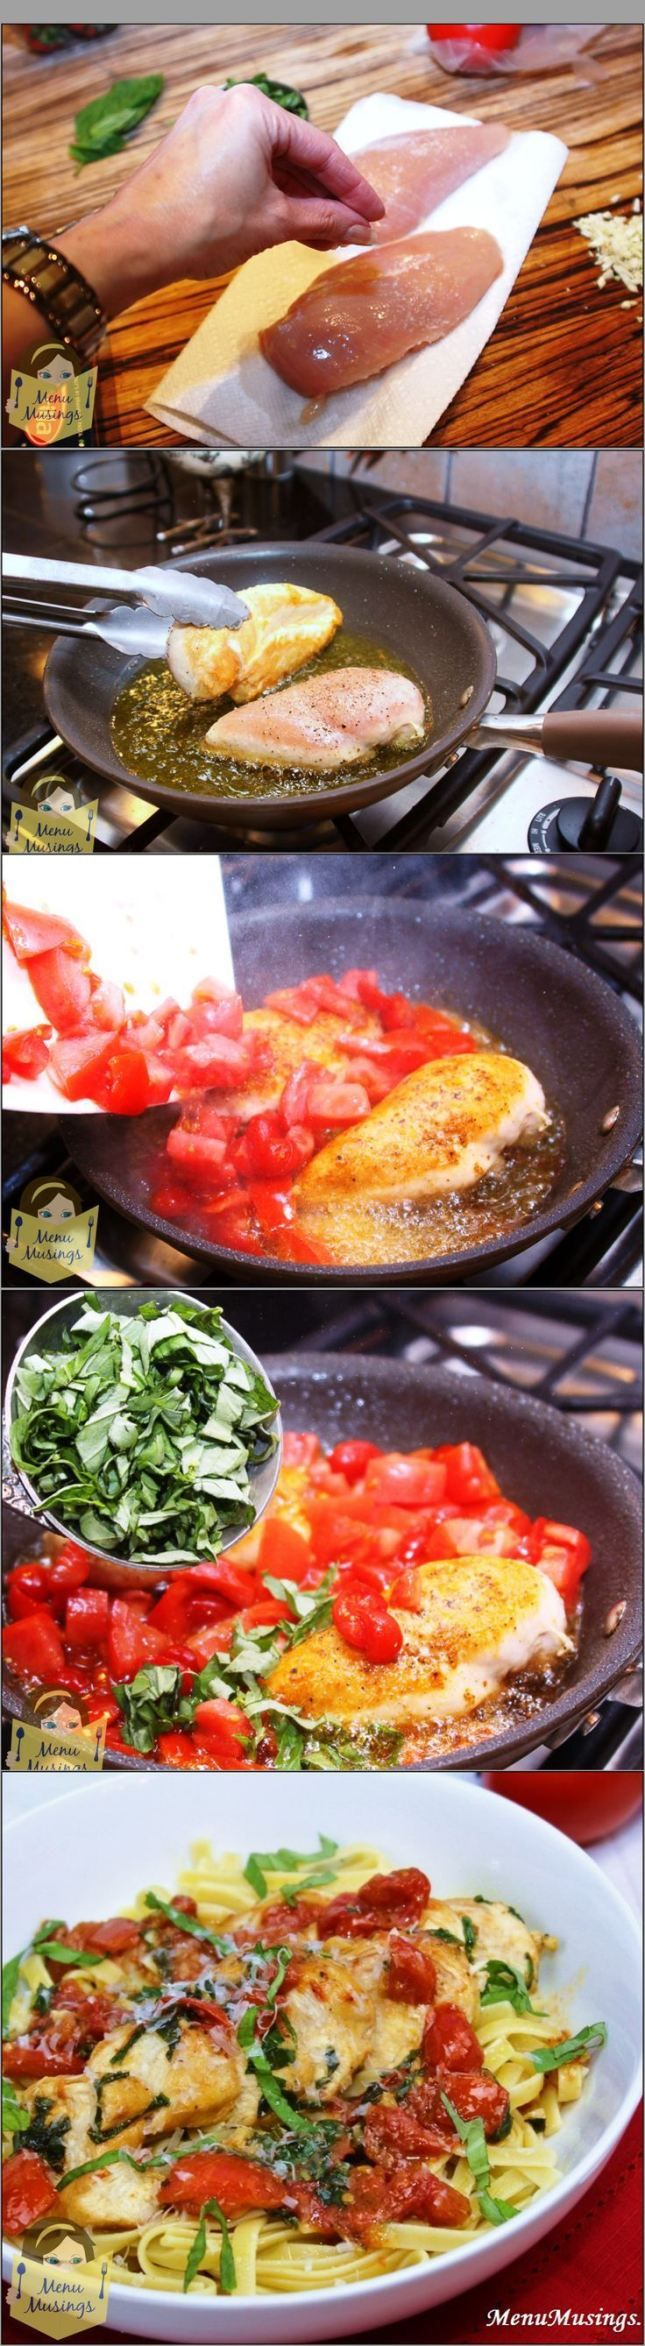 Tomato Basil Chicken – over 400K people can't be wrong! This step-by-step photo recipe is a huge hit with families, date night, and company.. and comes in under 30 minutes with all fresh ingredients. ? ? - Healthy and Diet Friendly Food Recipes. - Eating Yummy